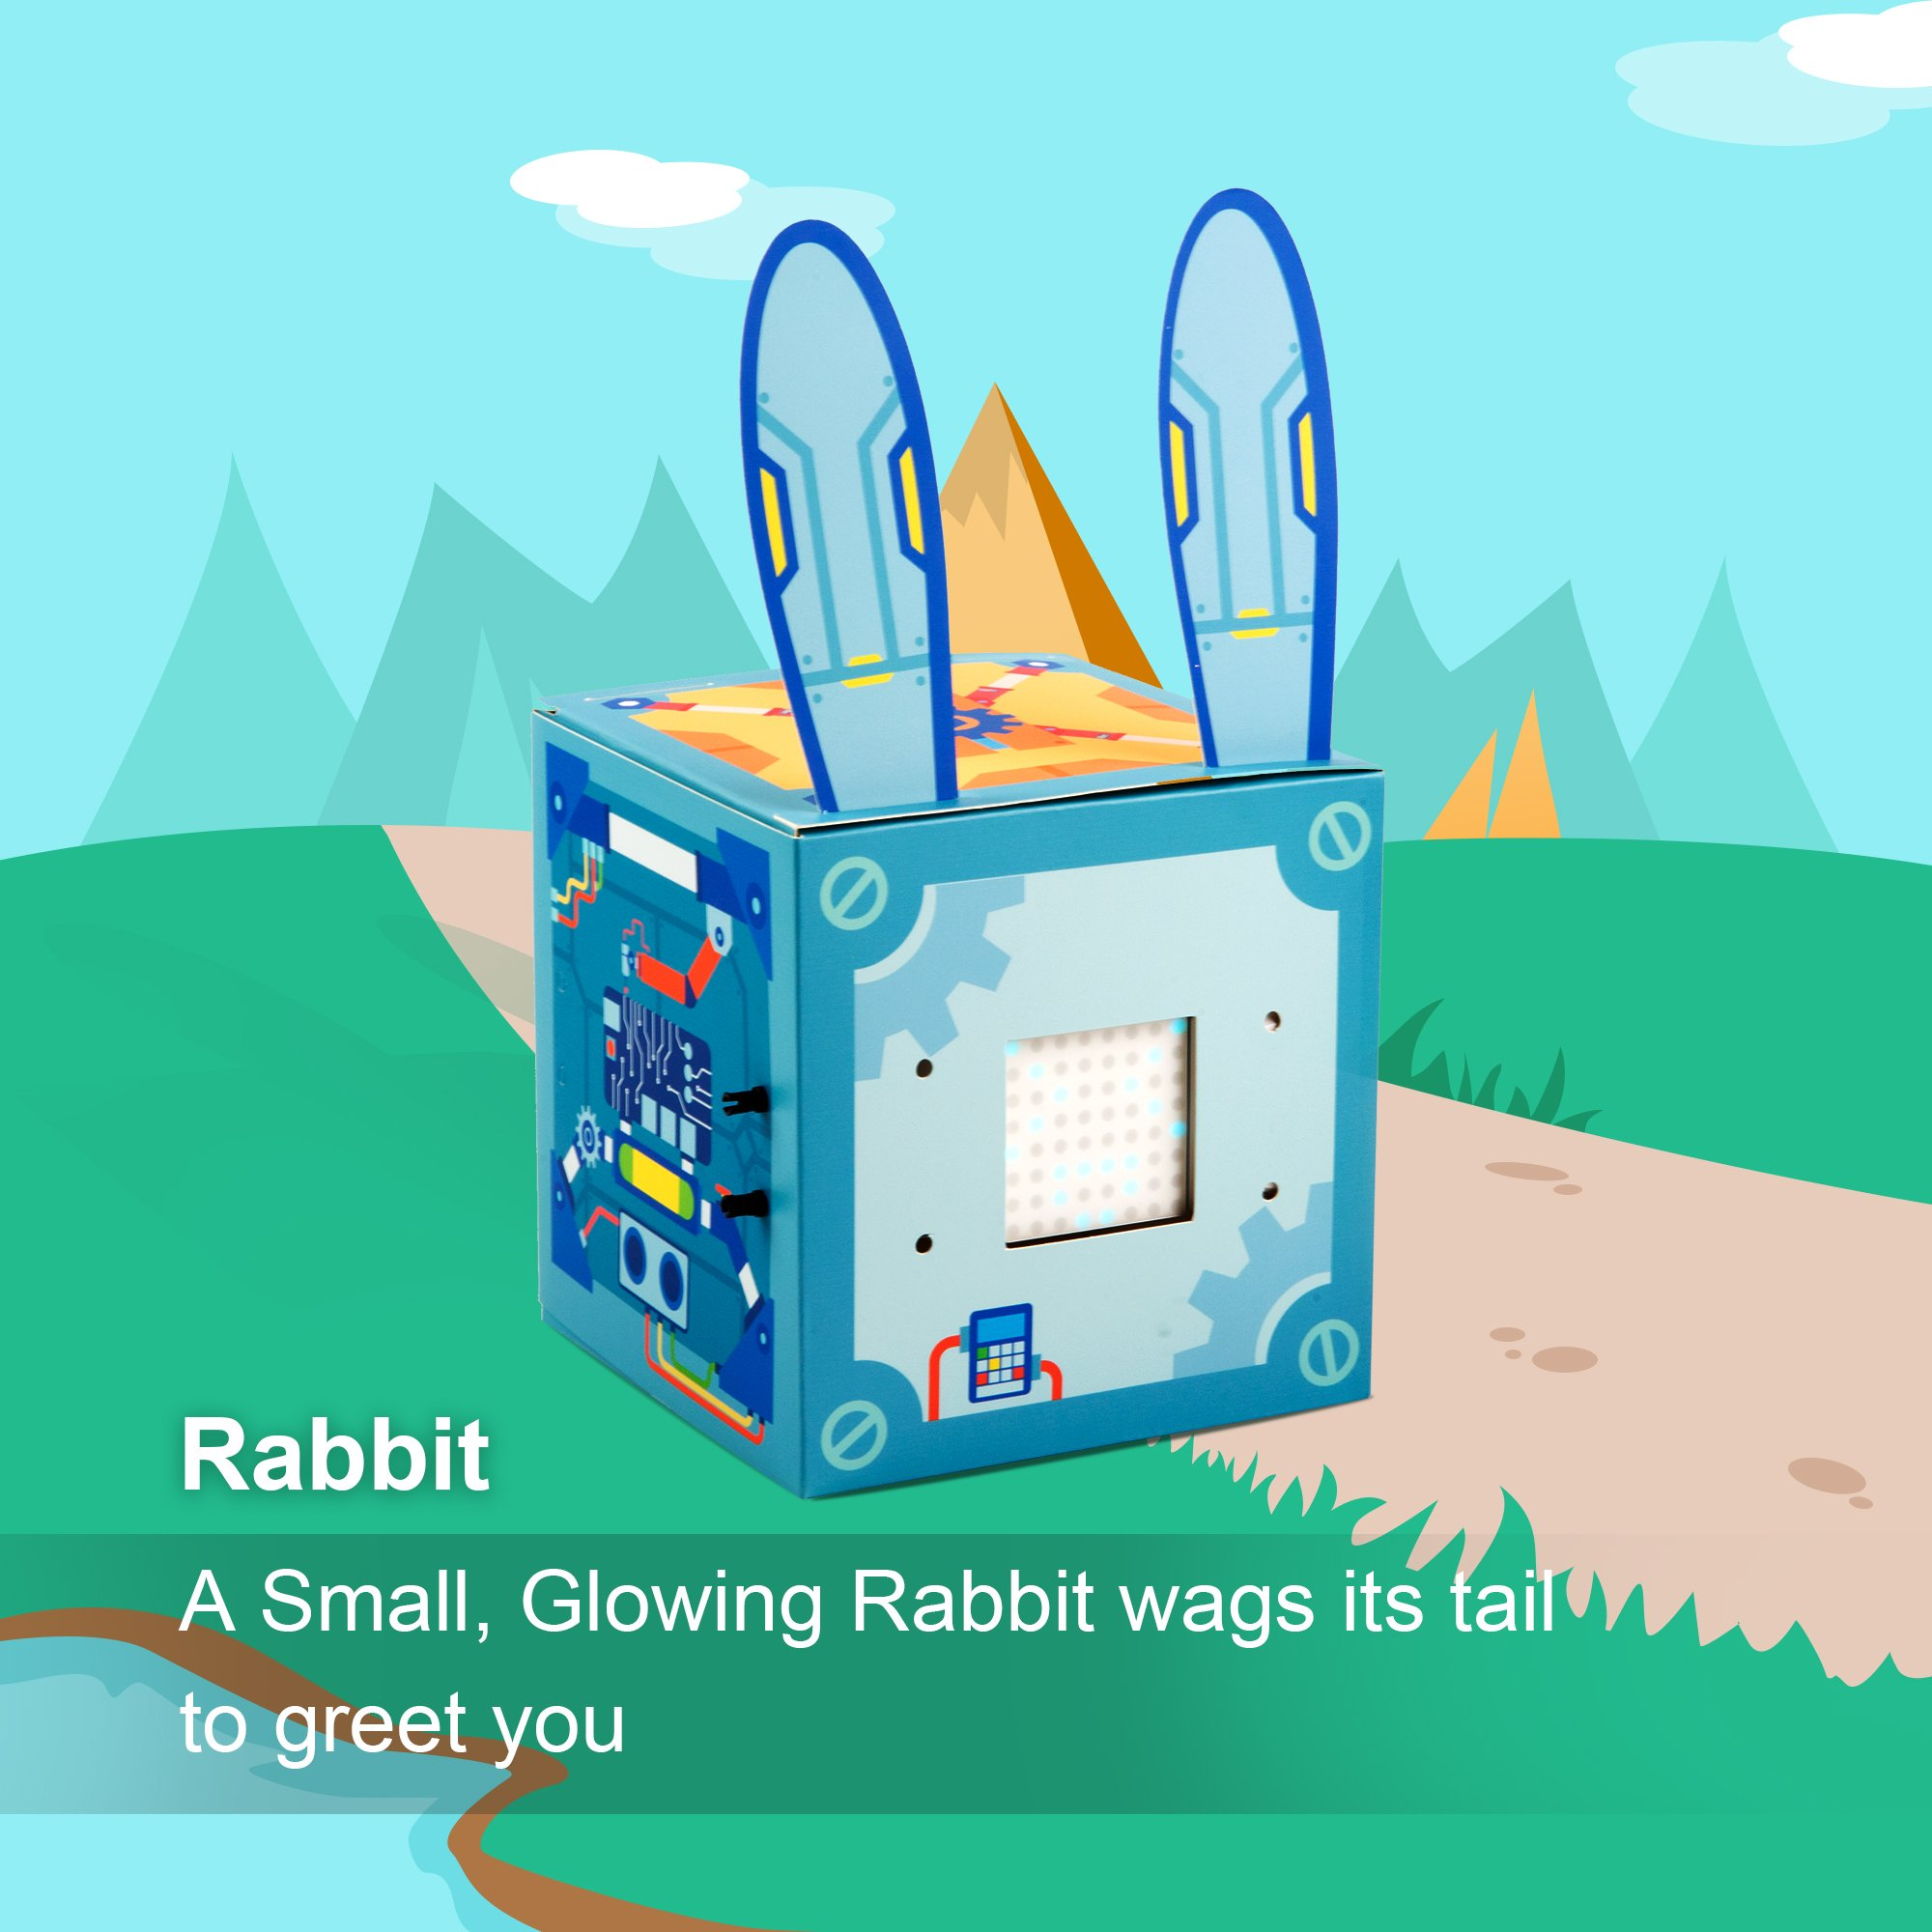 Makeblock Neuron Inventor Kit, STEAM Education, Graphical Programming, Magnetic Pogo Pins for 6 Year & up Kids+ with 6 Basic Blocks, Over 10 Kinds of Funny Robots, Like Rabbit,Dashing Raptor by Makeblock (Image #6)